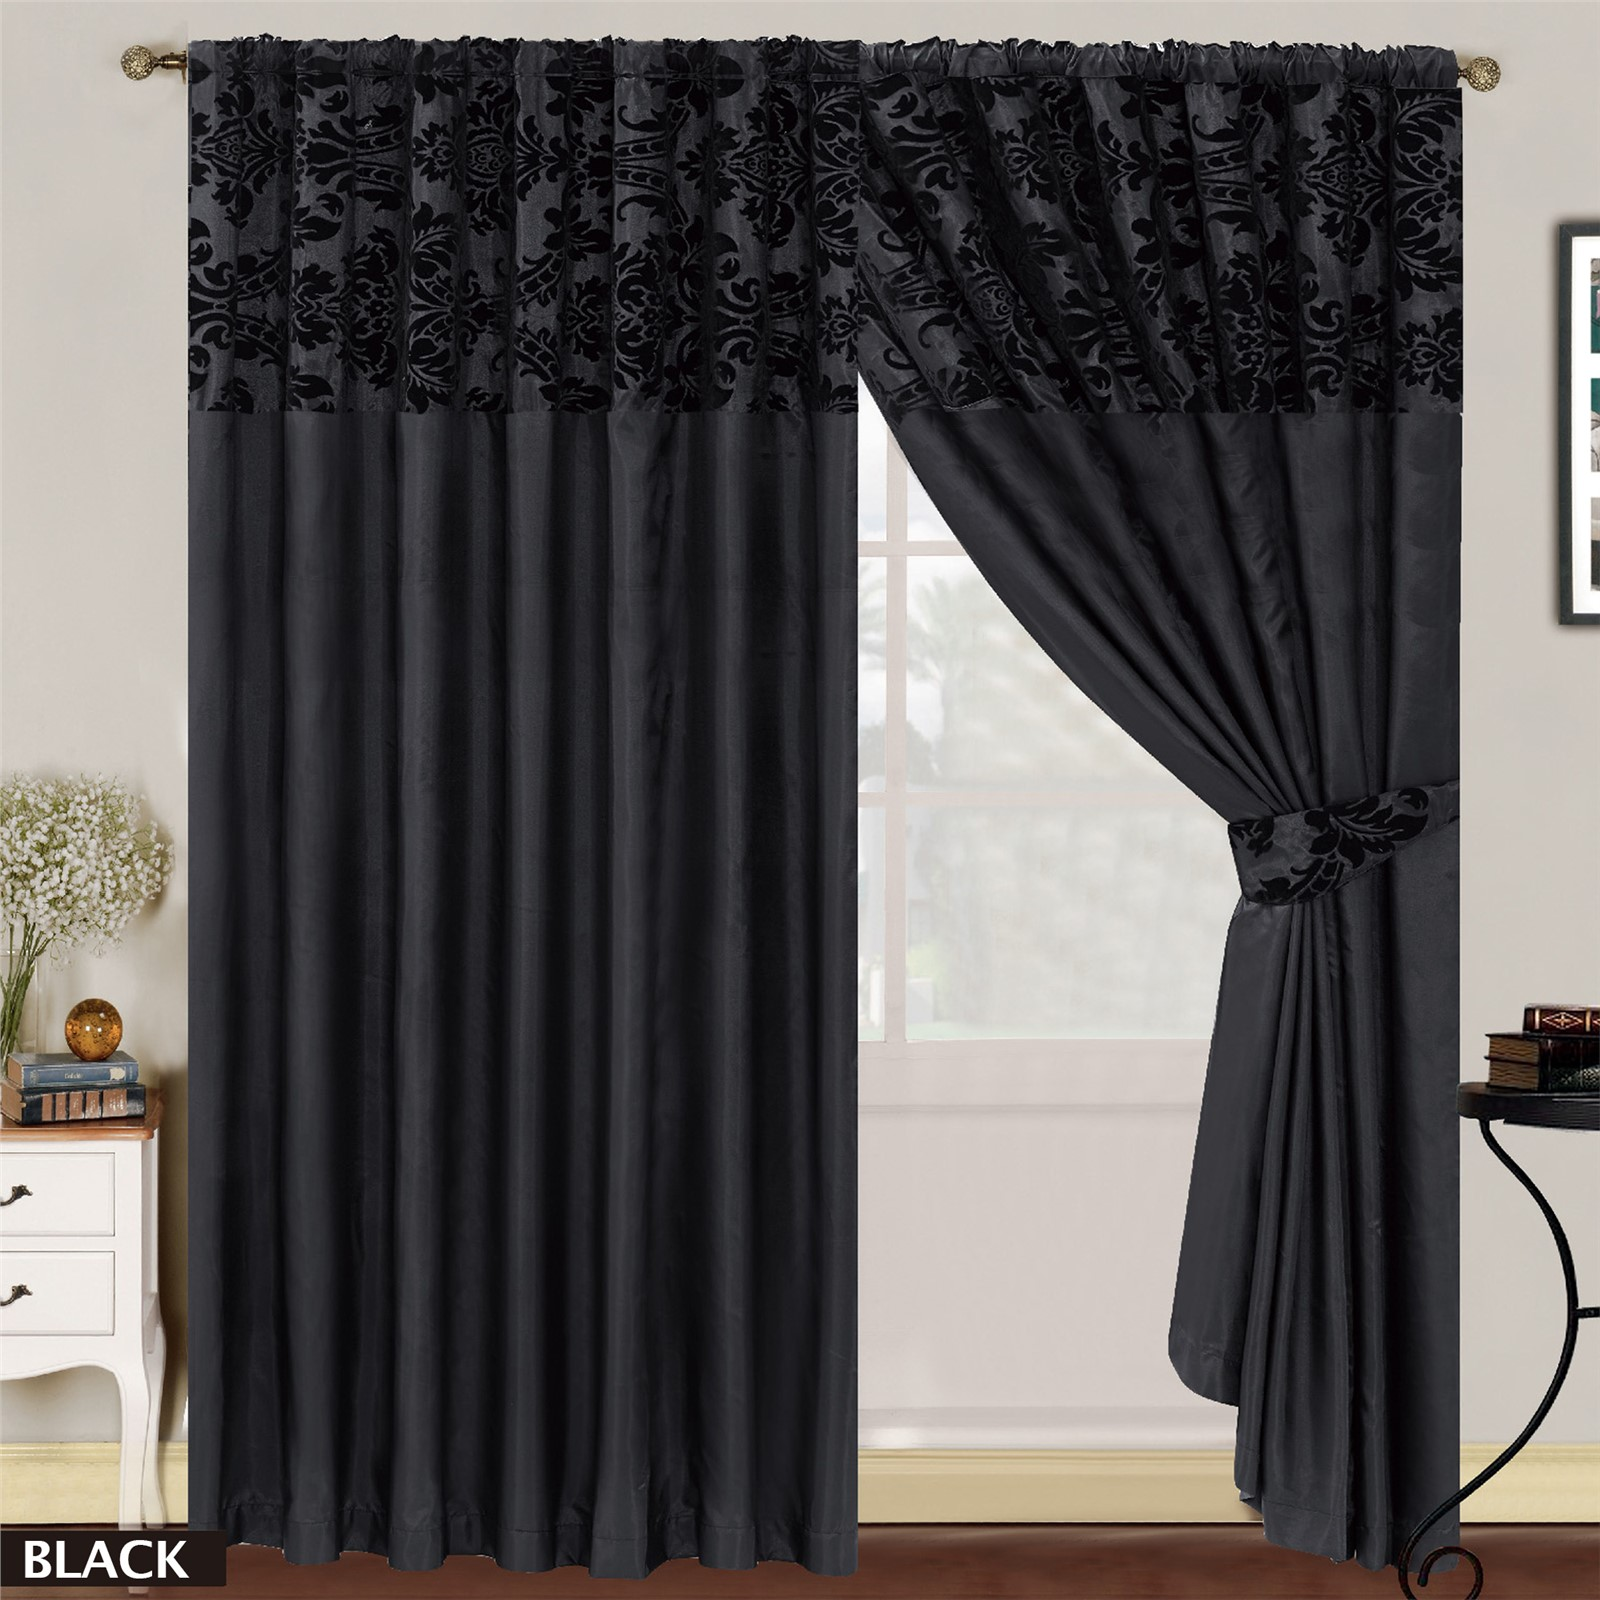 LUXURY Damask Curtains Pair Of Half Flock Pencil Pleat Window ...